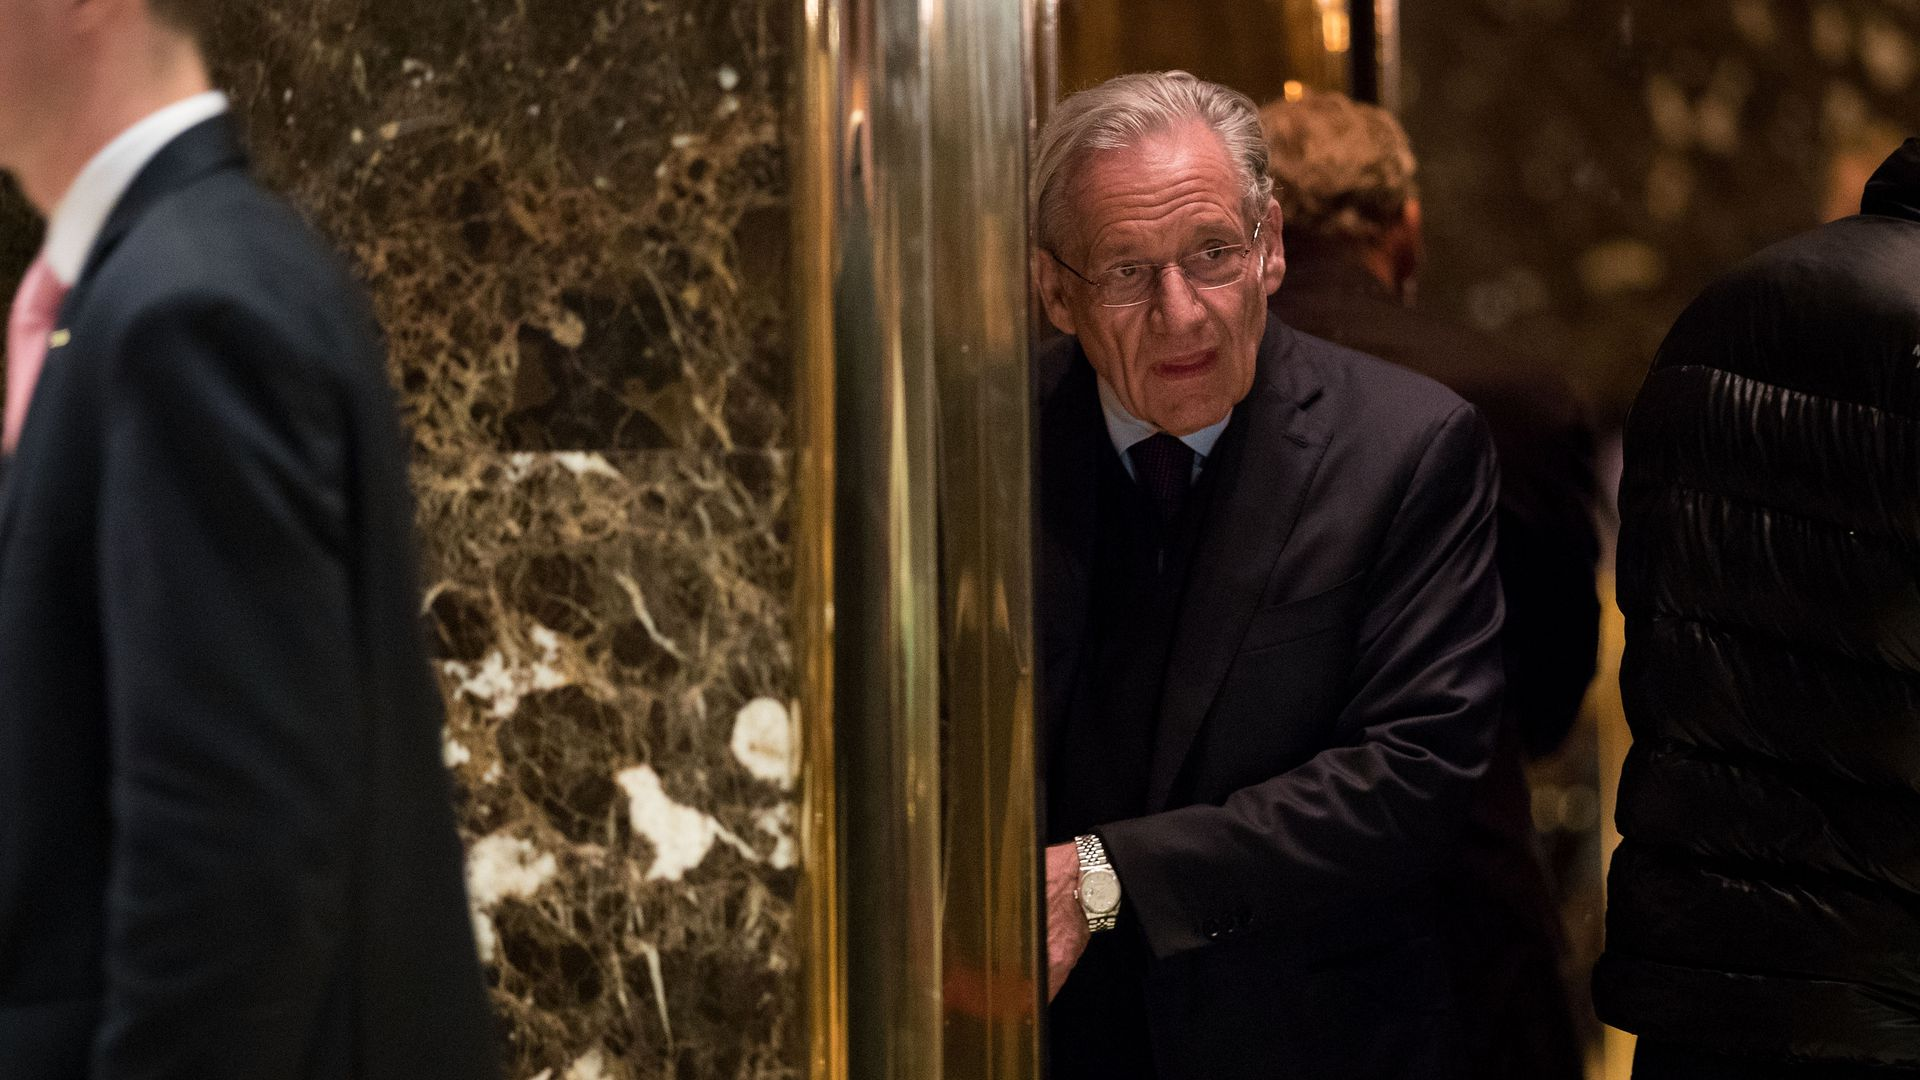 Journalist Bob Woodward at Trump Tower in January 2017. Photo: Drew Angerer/Getty Images